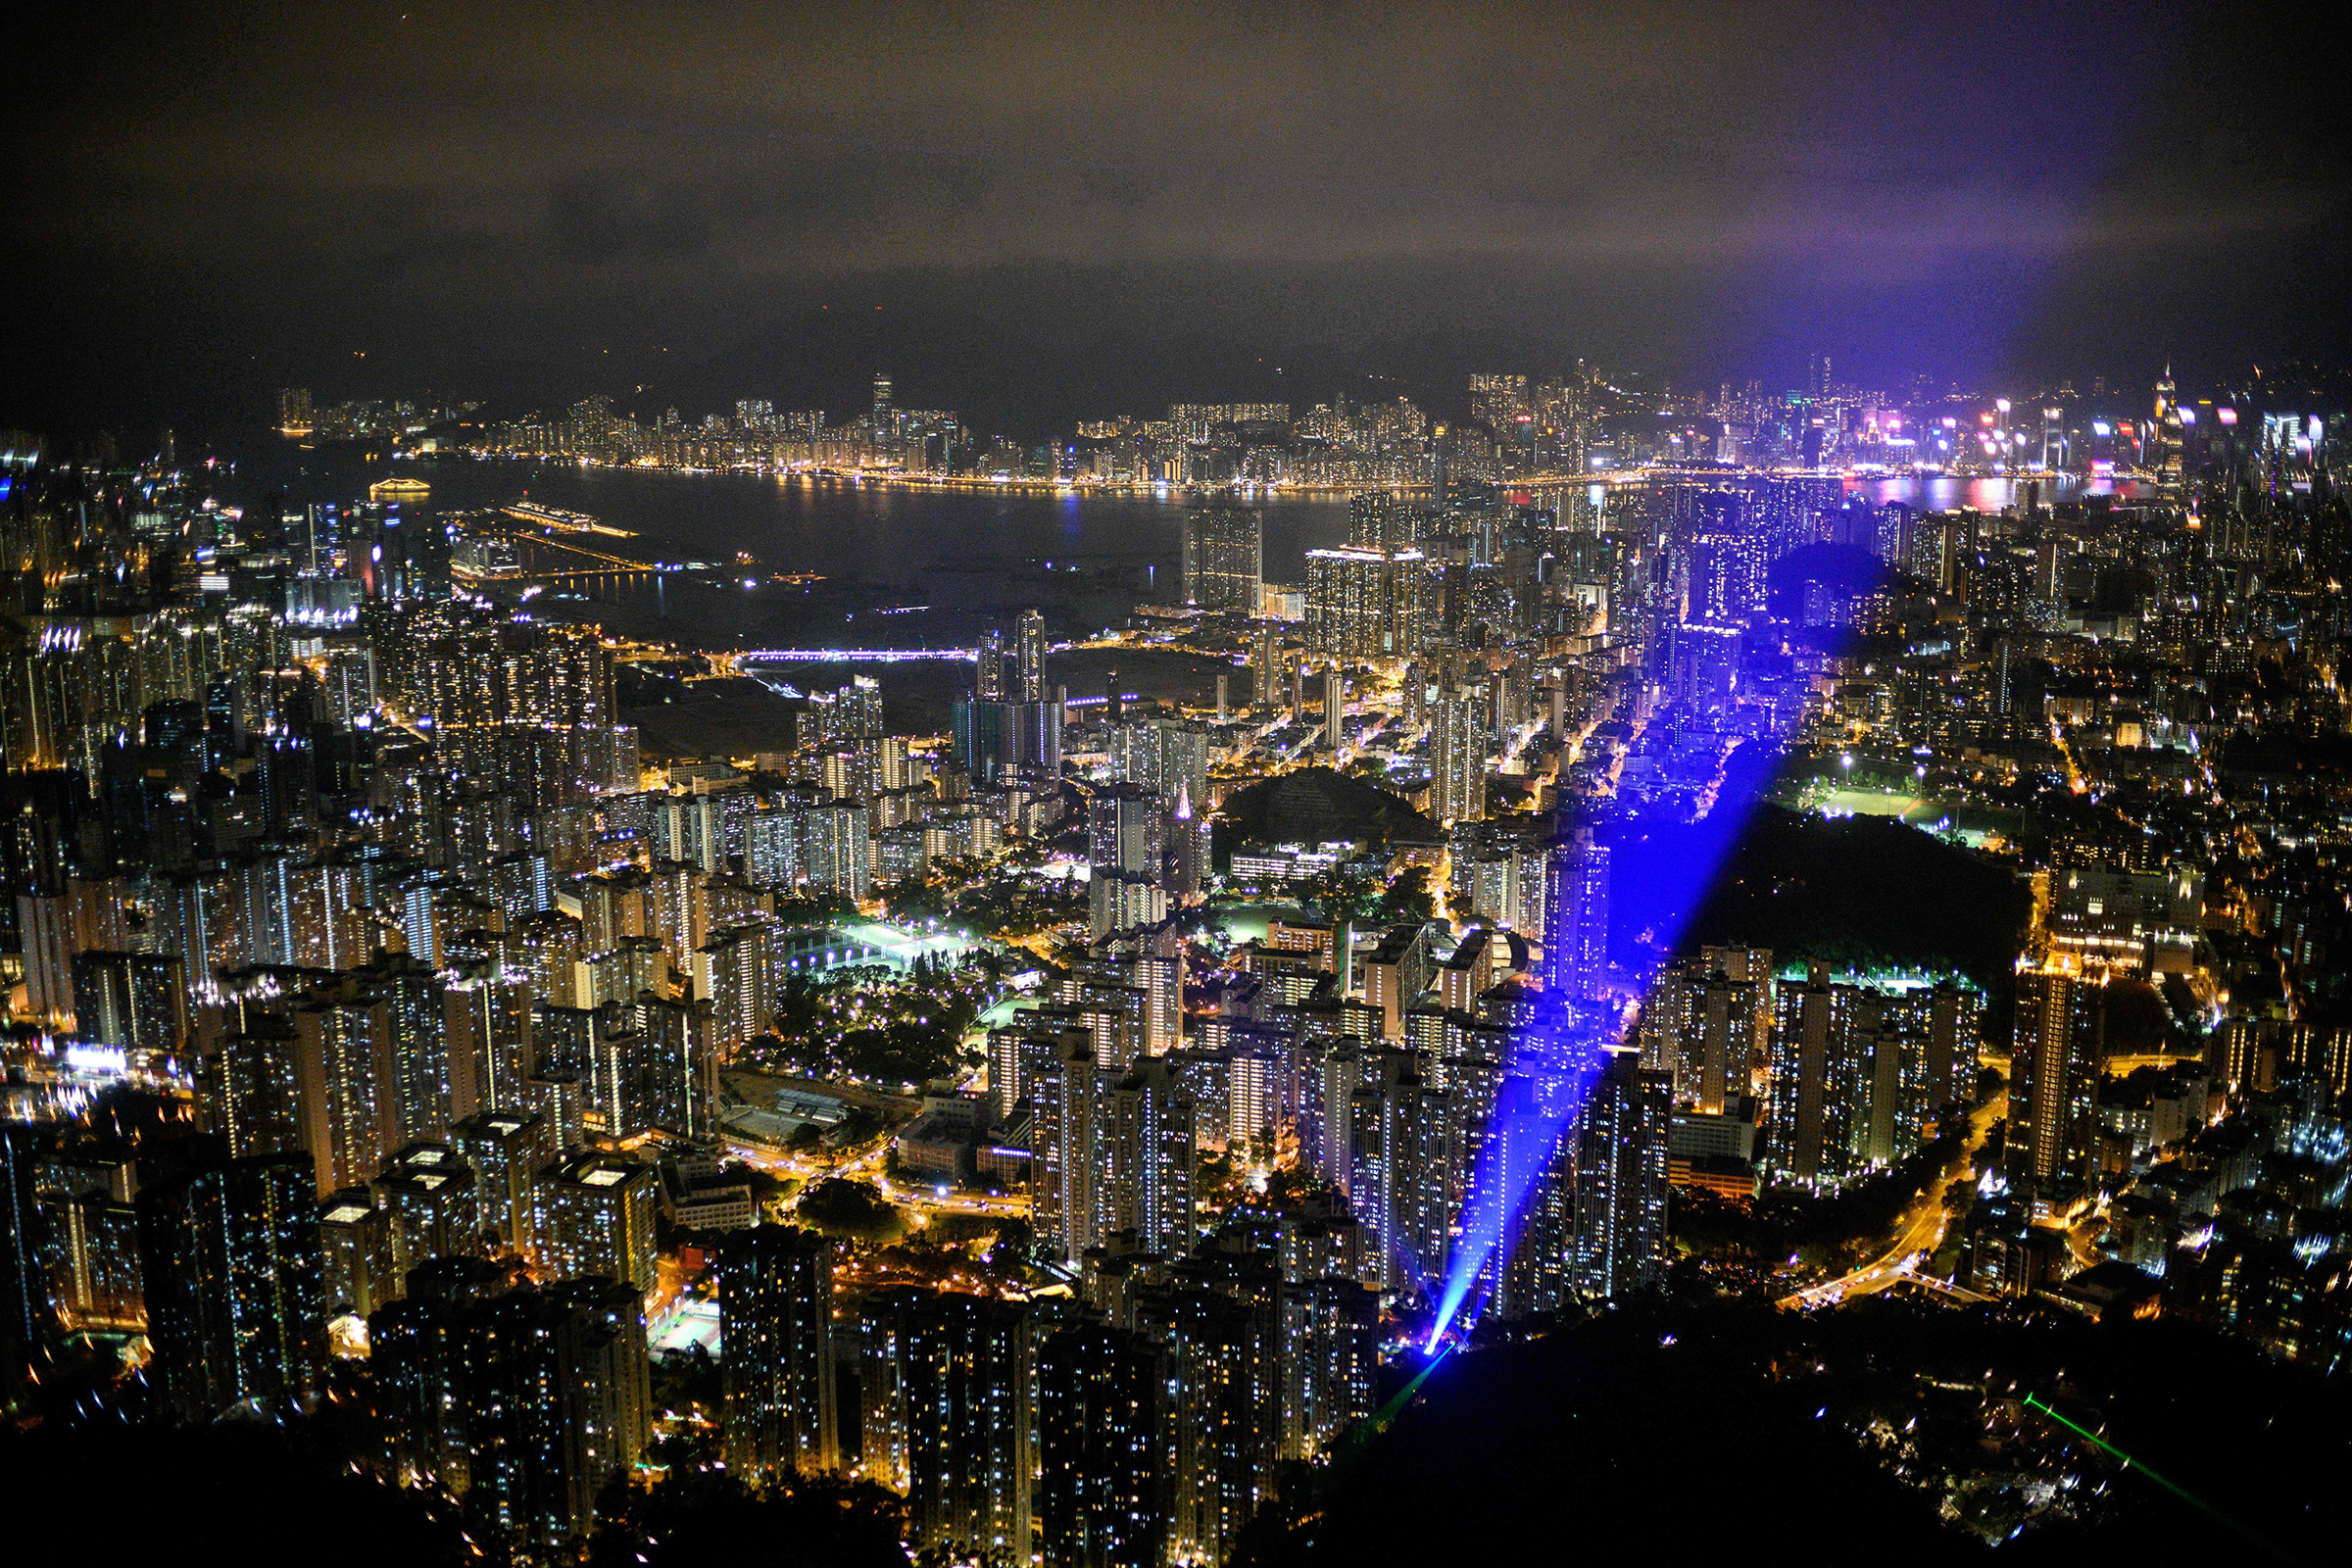 The Kowloon district of Hong Kong, seen from                 Lion Rock during a pro-democracy gathering in September